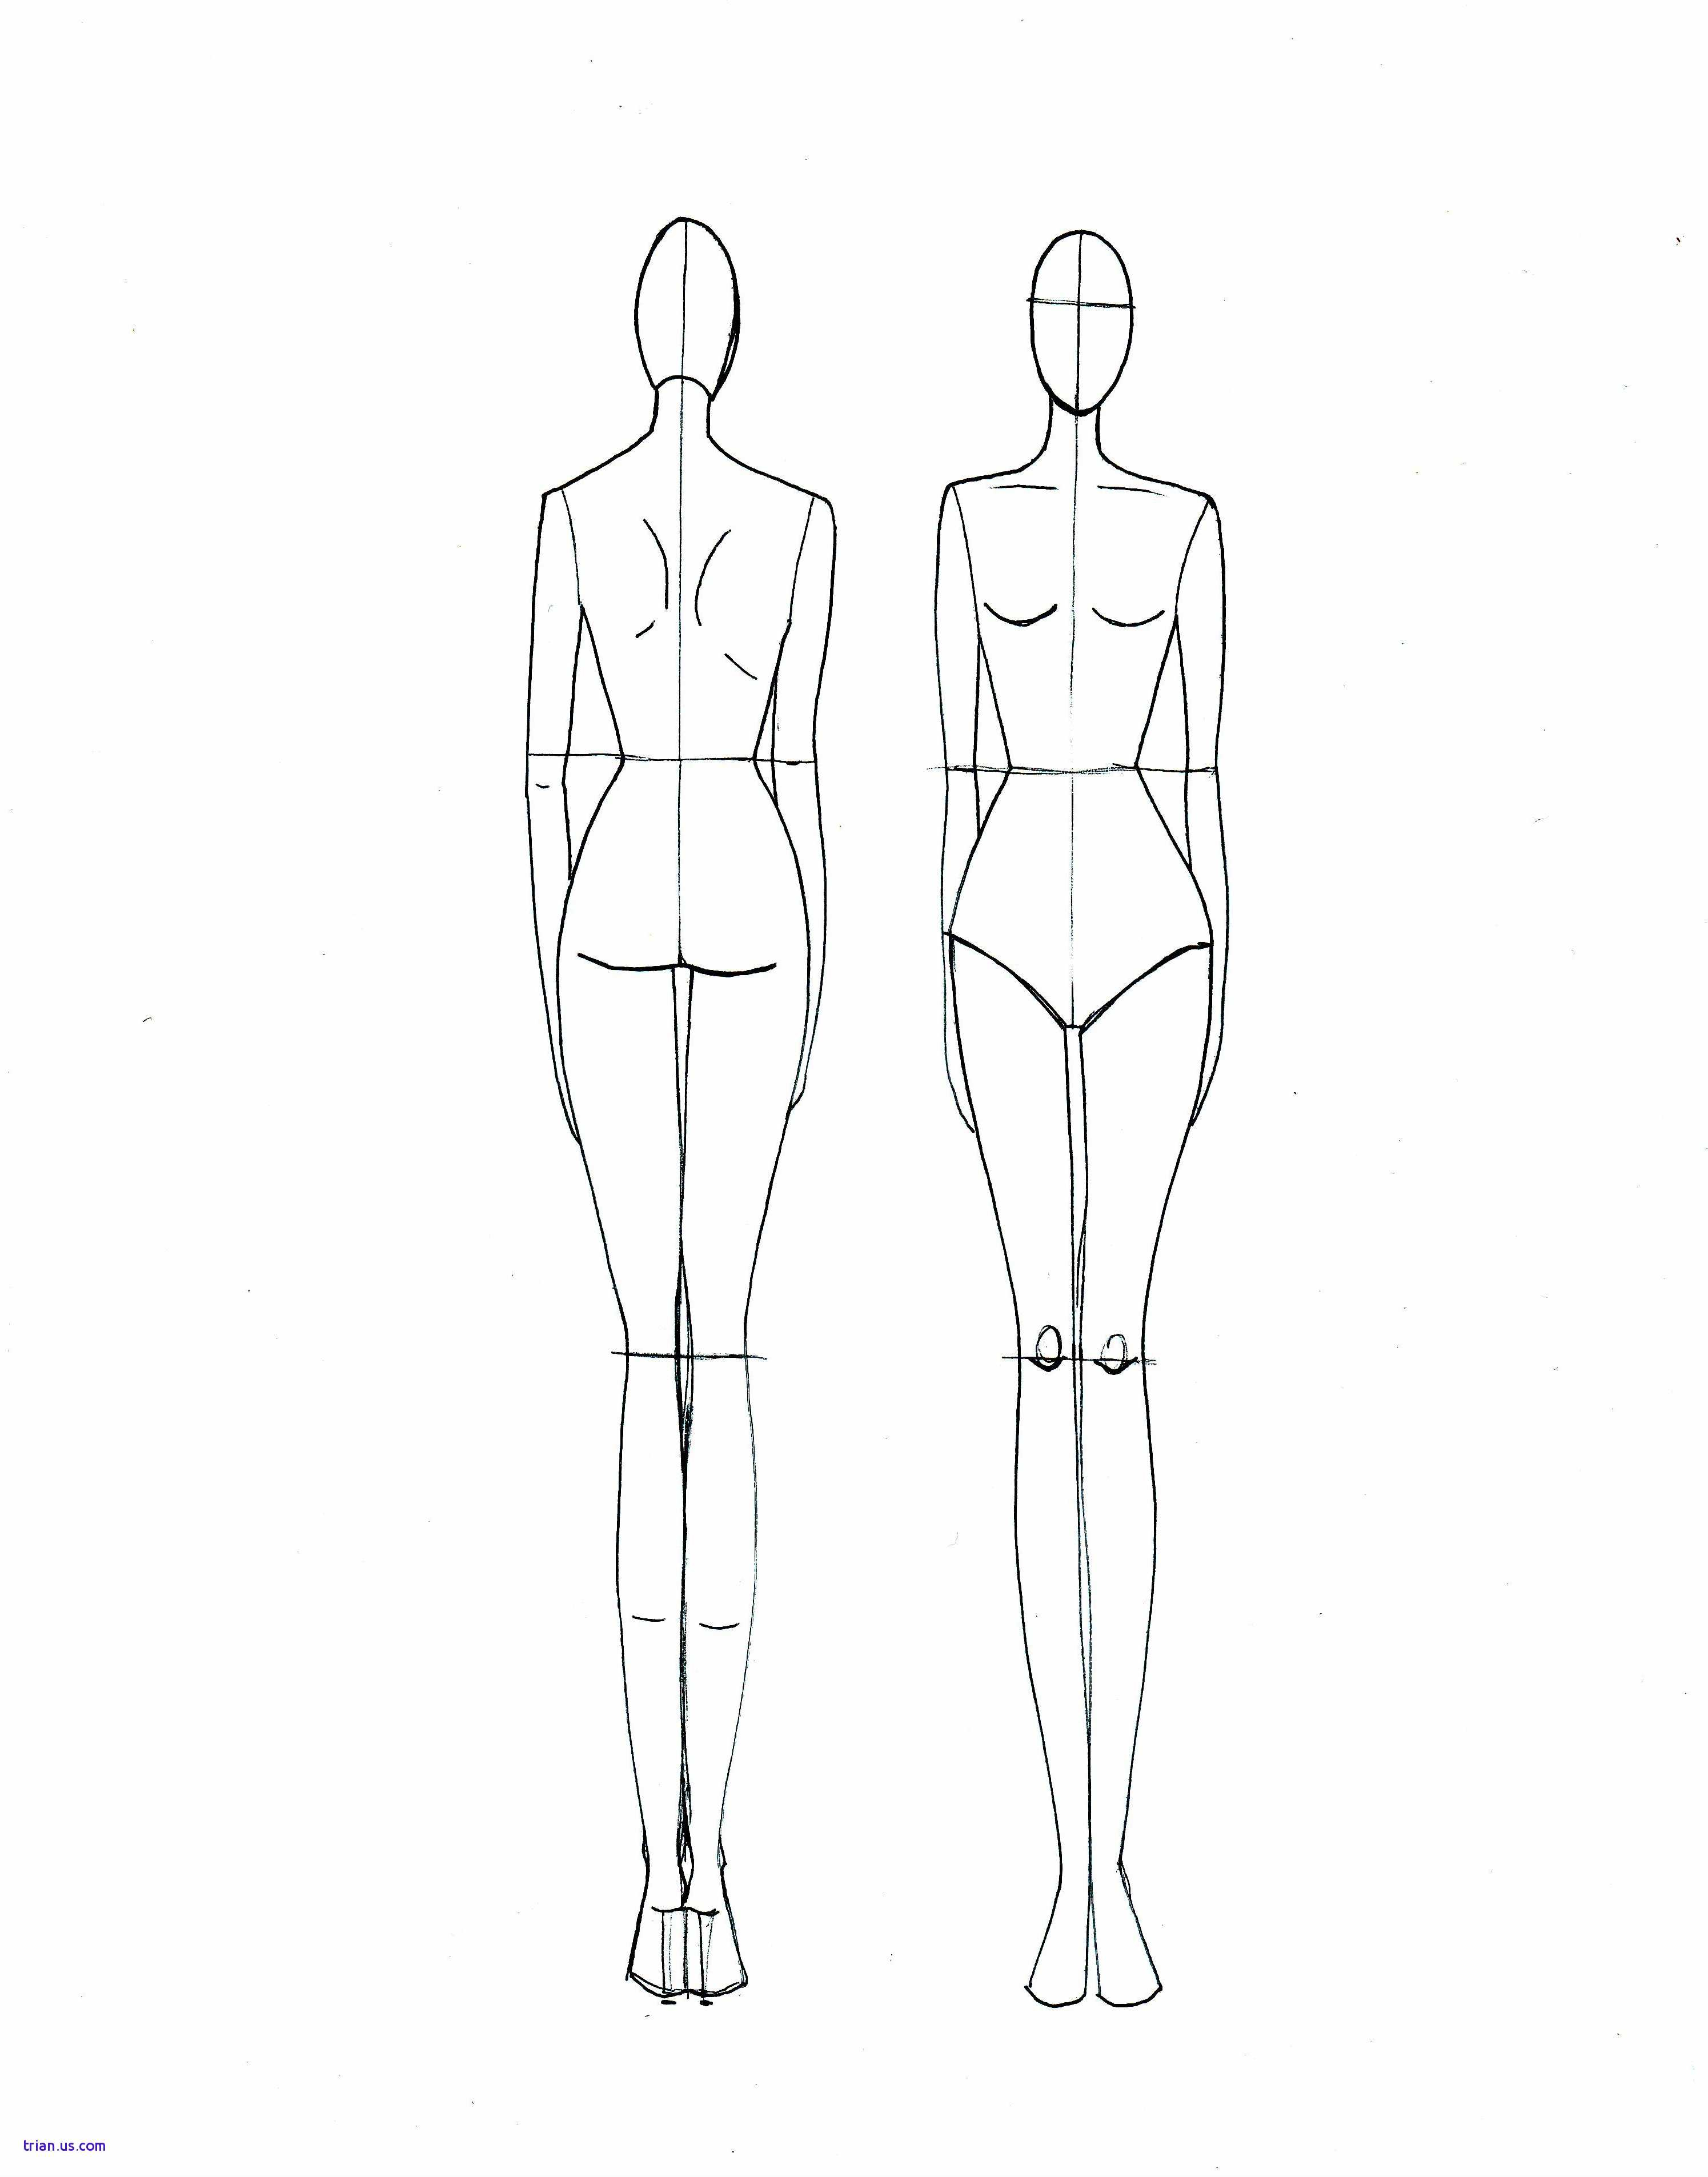 7 Drawing Template Back Model For Free Download On Ayoqq - Free Printable Fashion Model Templates